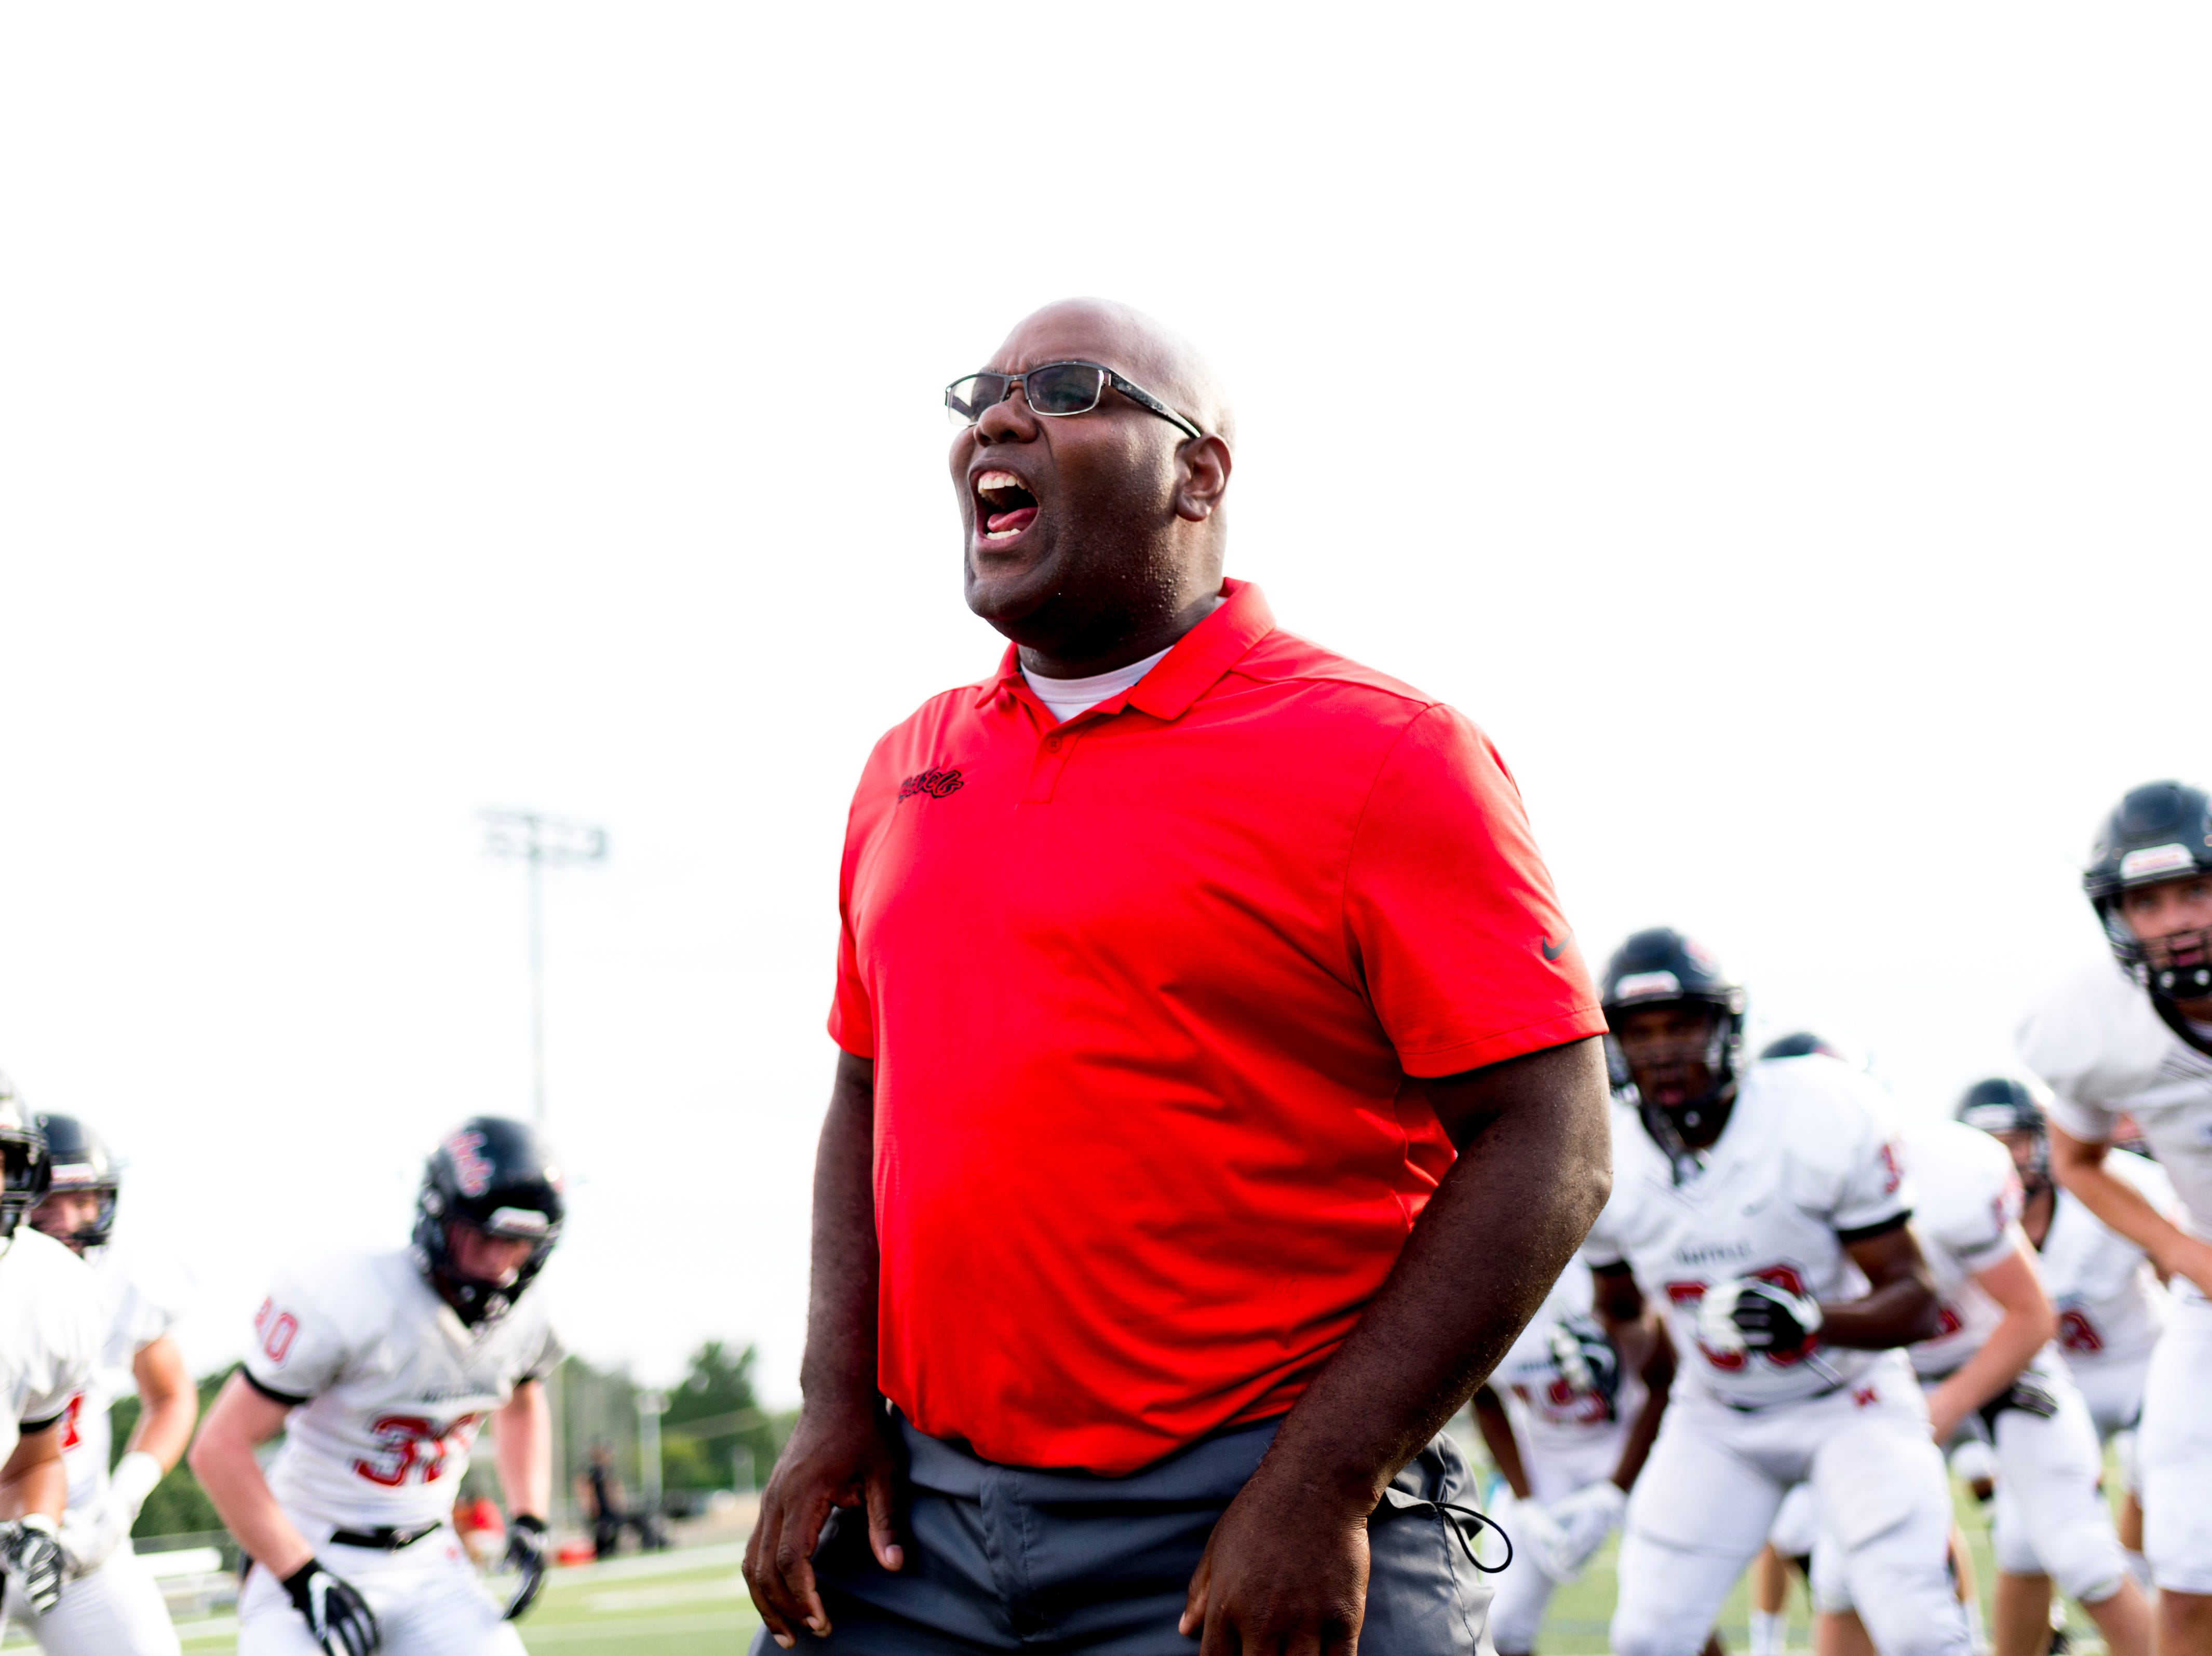 A Maryville coach pumps up the team during a pre-game huddle during a football game between Maryville and Catholic at Catholic High School in Knoxville, Tennessee on Friday, August 17, 2018.